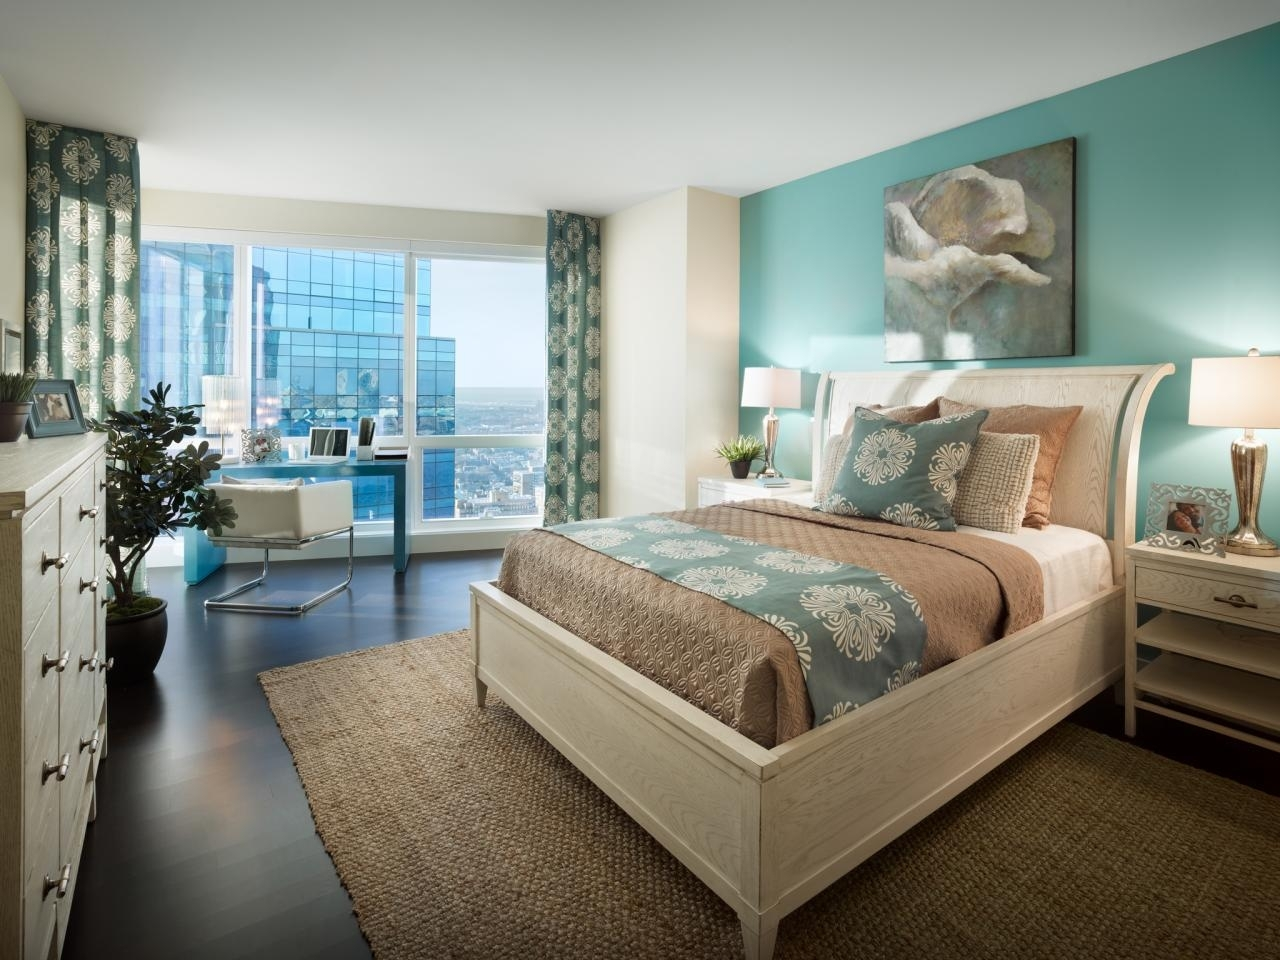 Bedroom | Coastal Accent Use Aquamarine Wall Accent – Contrast Way Inside Most Popular Wall Accents For Beige Room (View 15 of 15)